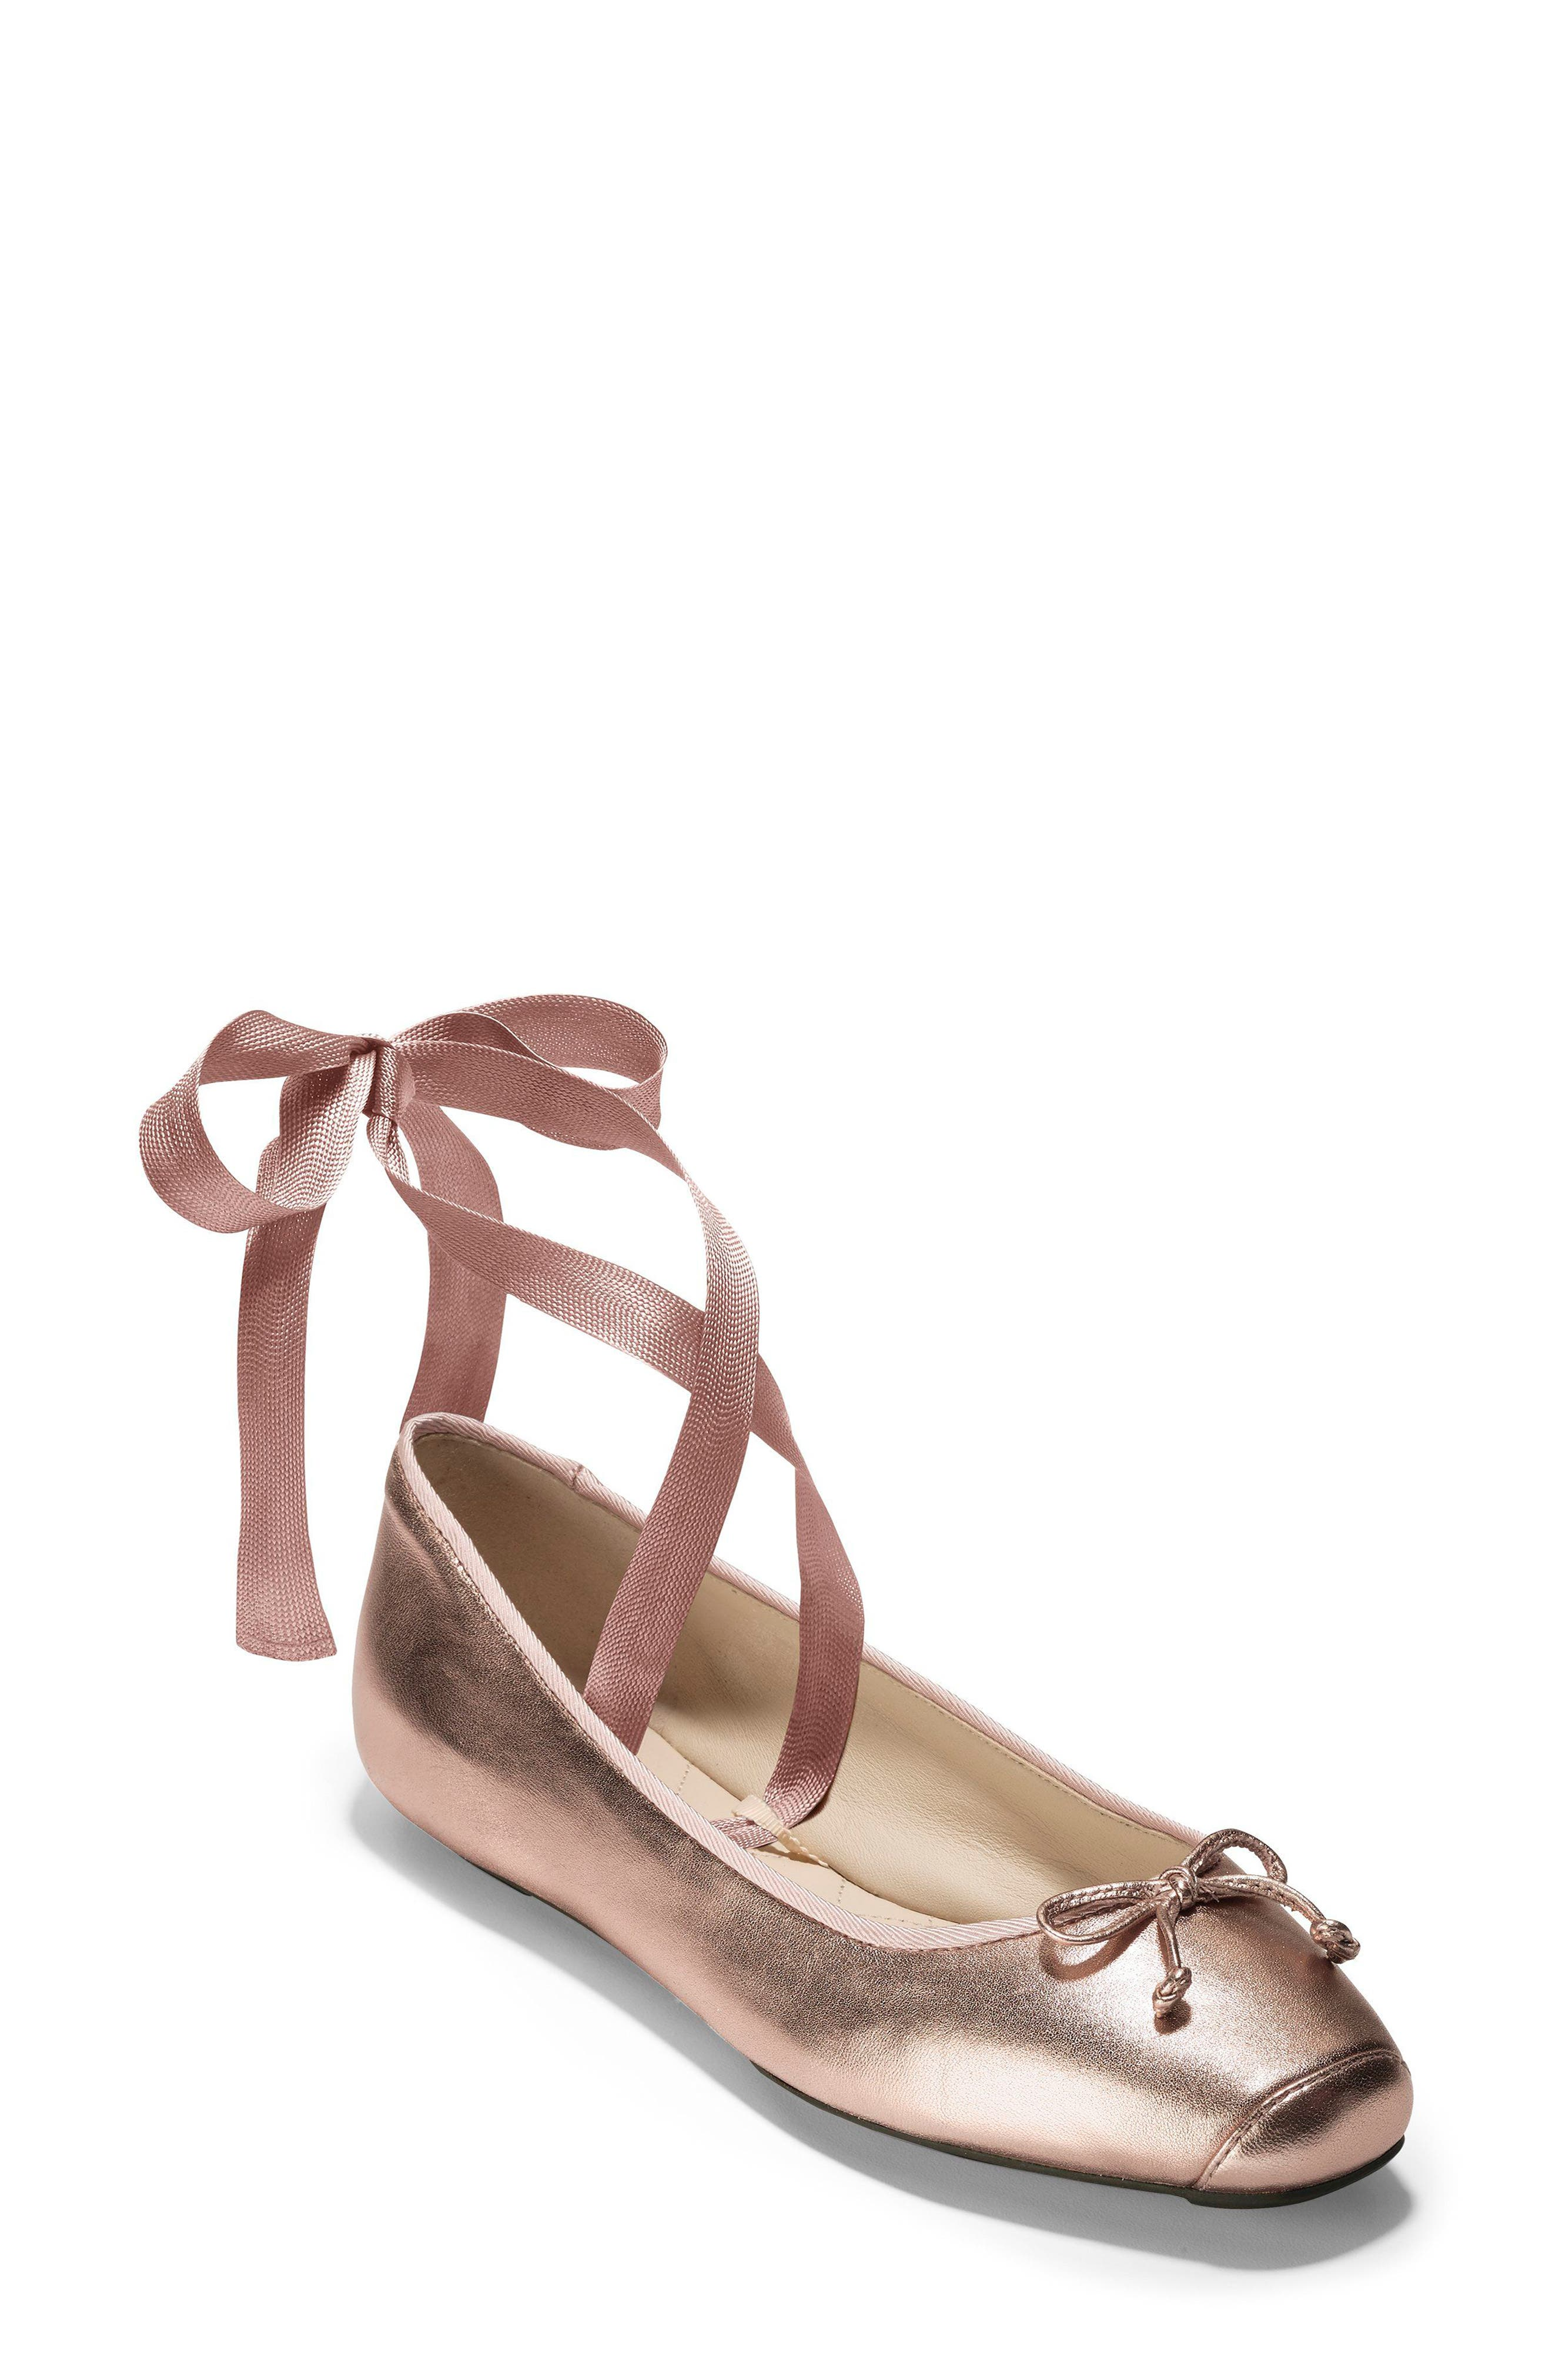 Main Image - Cole Haan Downtown Ankle Wrap Ballet Flat (Women)